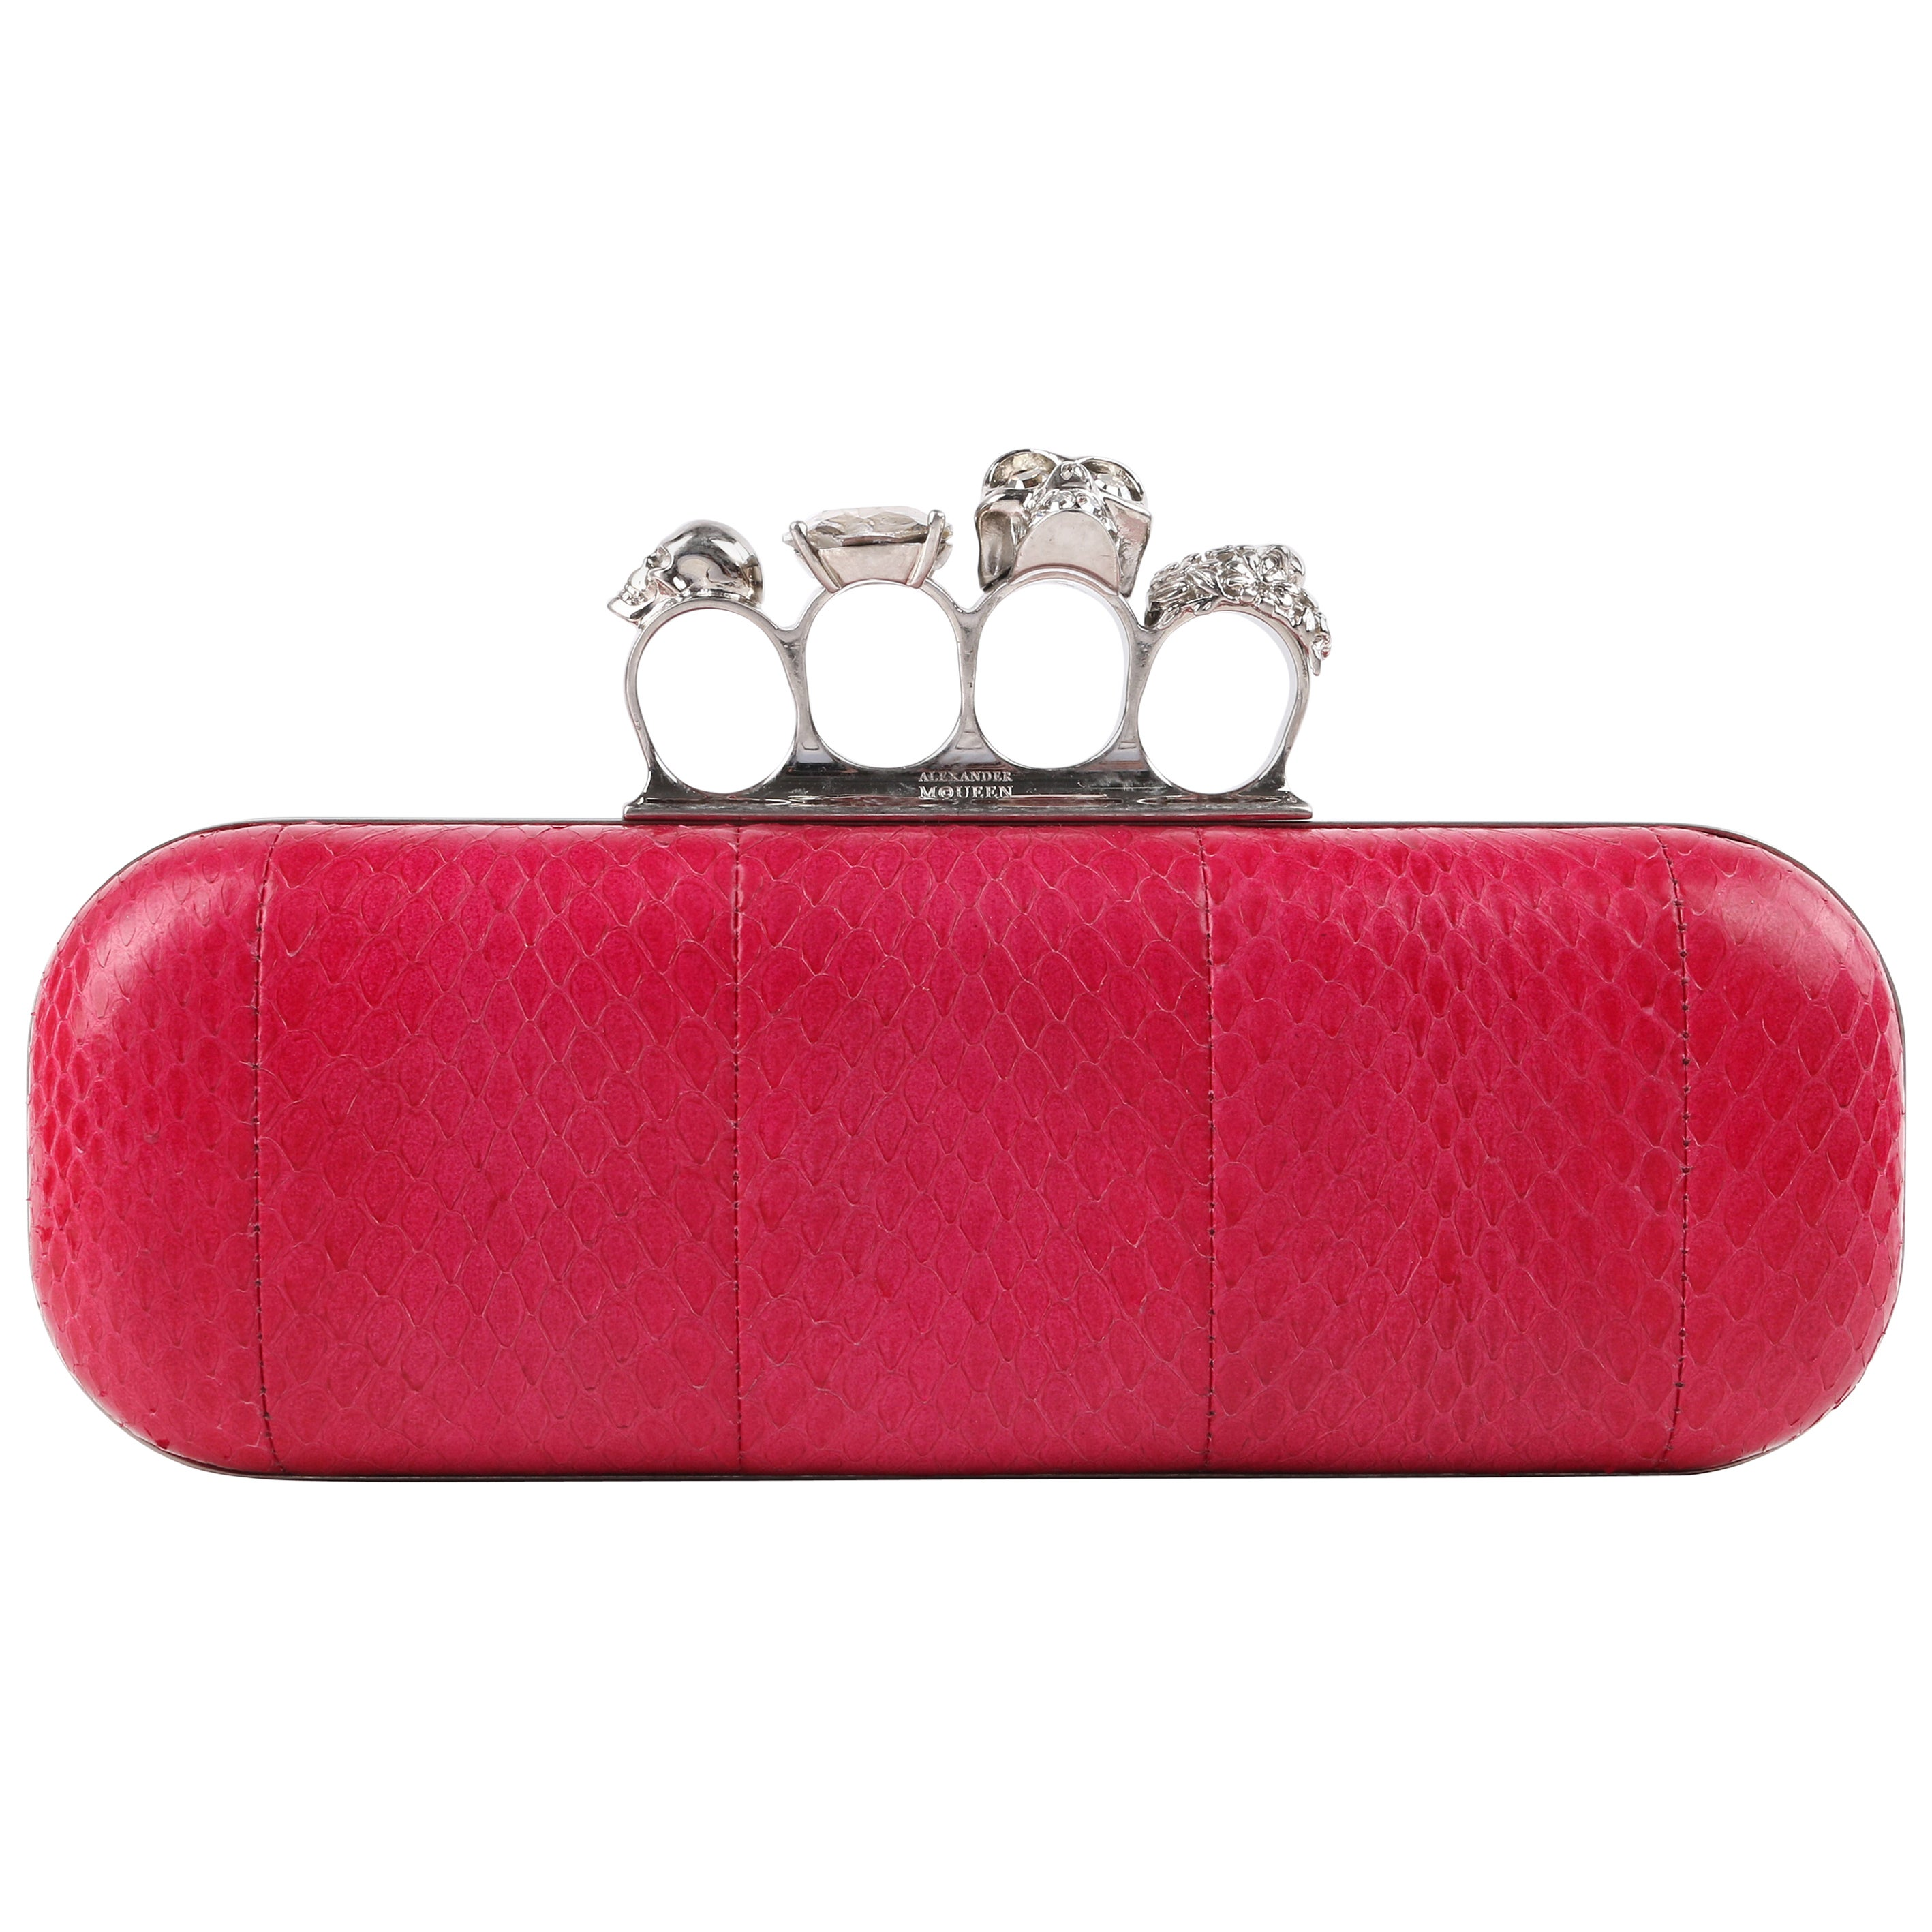 ALEXANDER McQUEEN Fuchsia Pink Python Crystal Knuckle-Duster Box Clutch